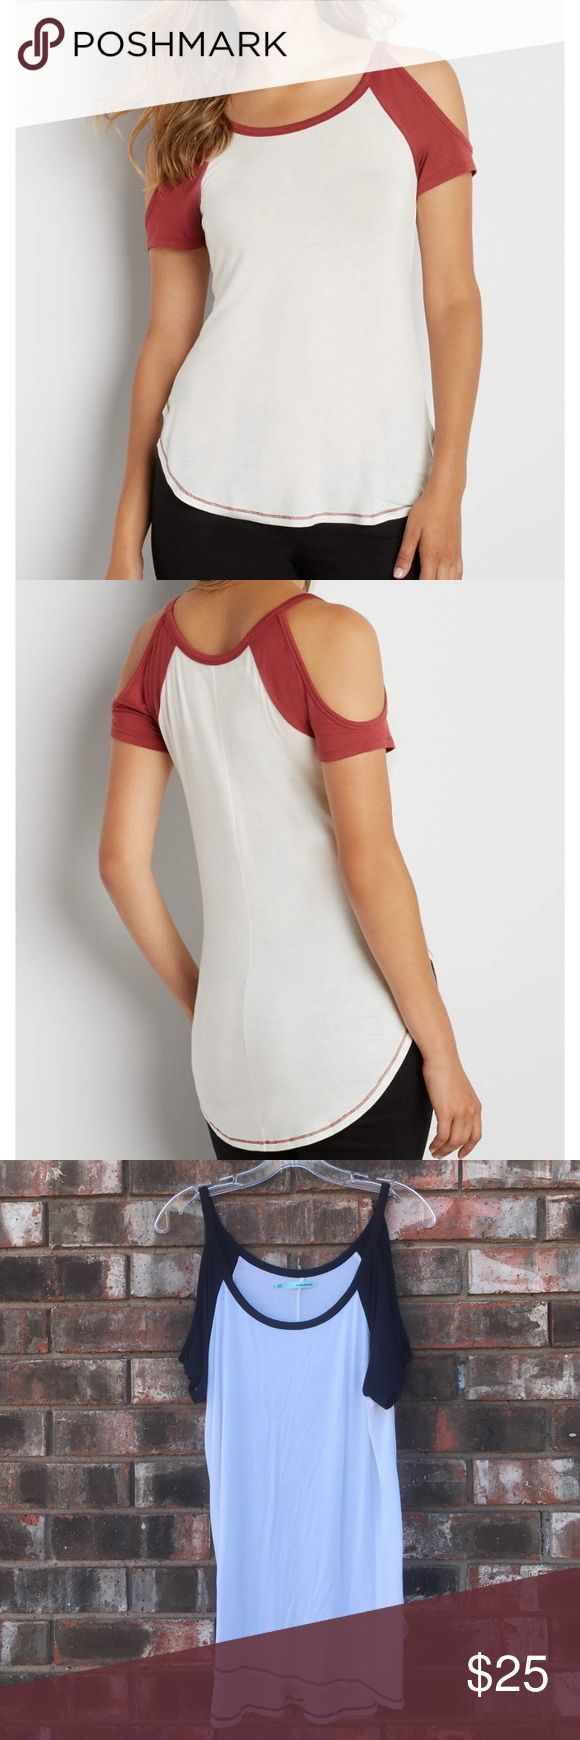 NWOT!! Maurice's baseball Tee Cute cut out shoulders baseball tee!! I DO NOT HAVE THE RED SHIRT!! Only the navy blue. Picture is to only show how it looks on. NWOT!! Maurices Tops Tees - Short Sleeve